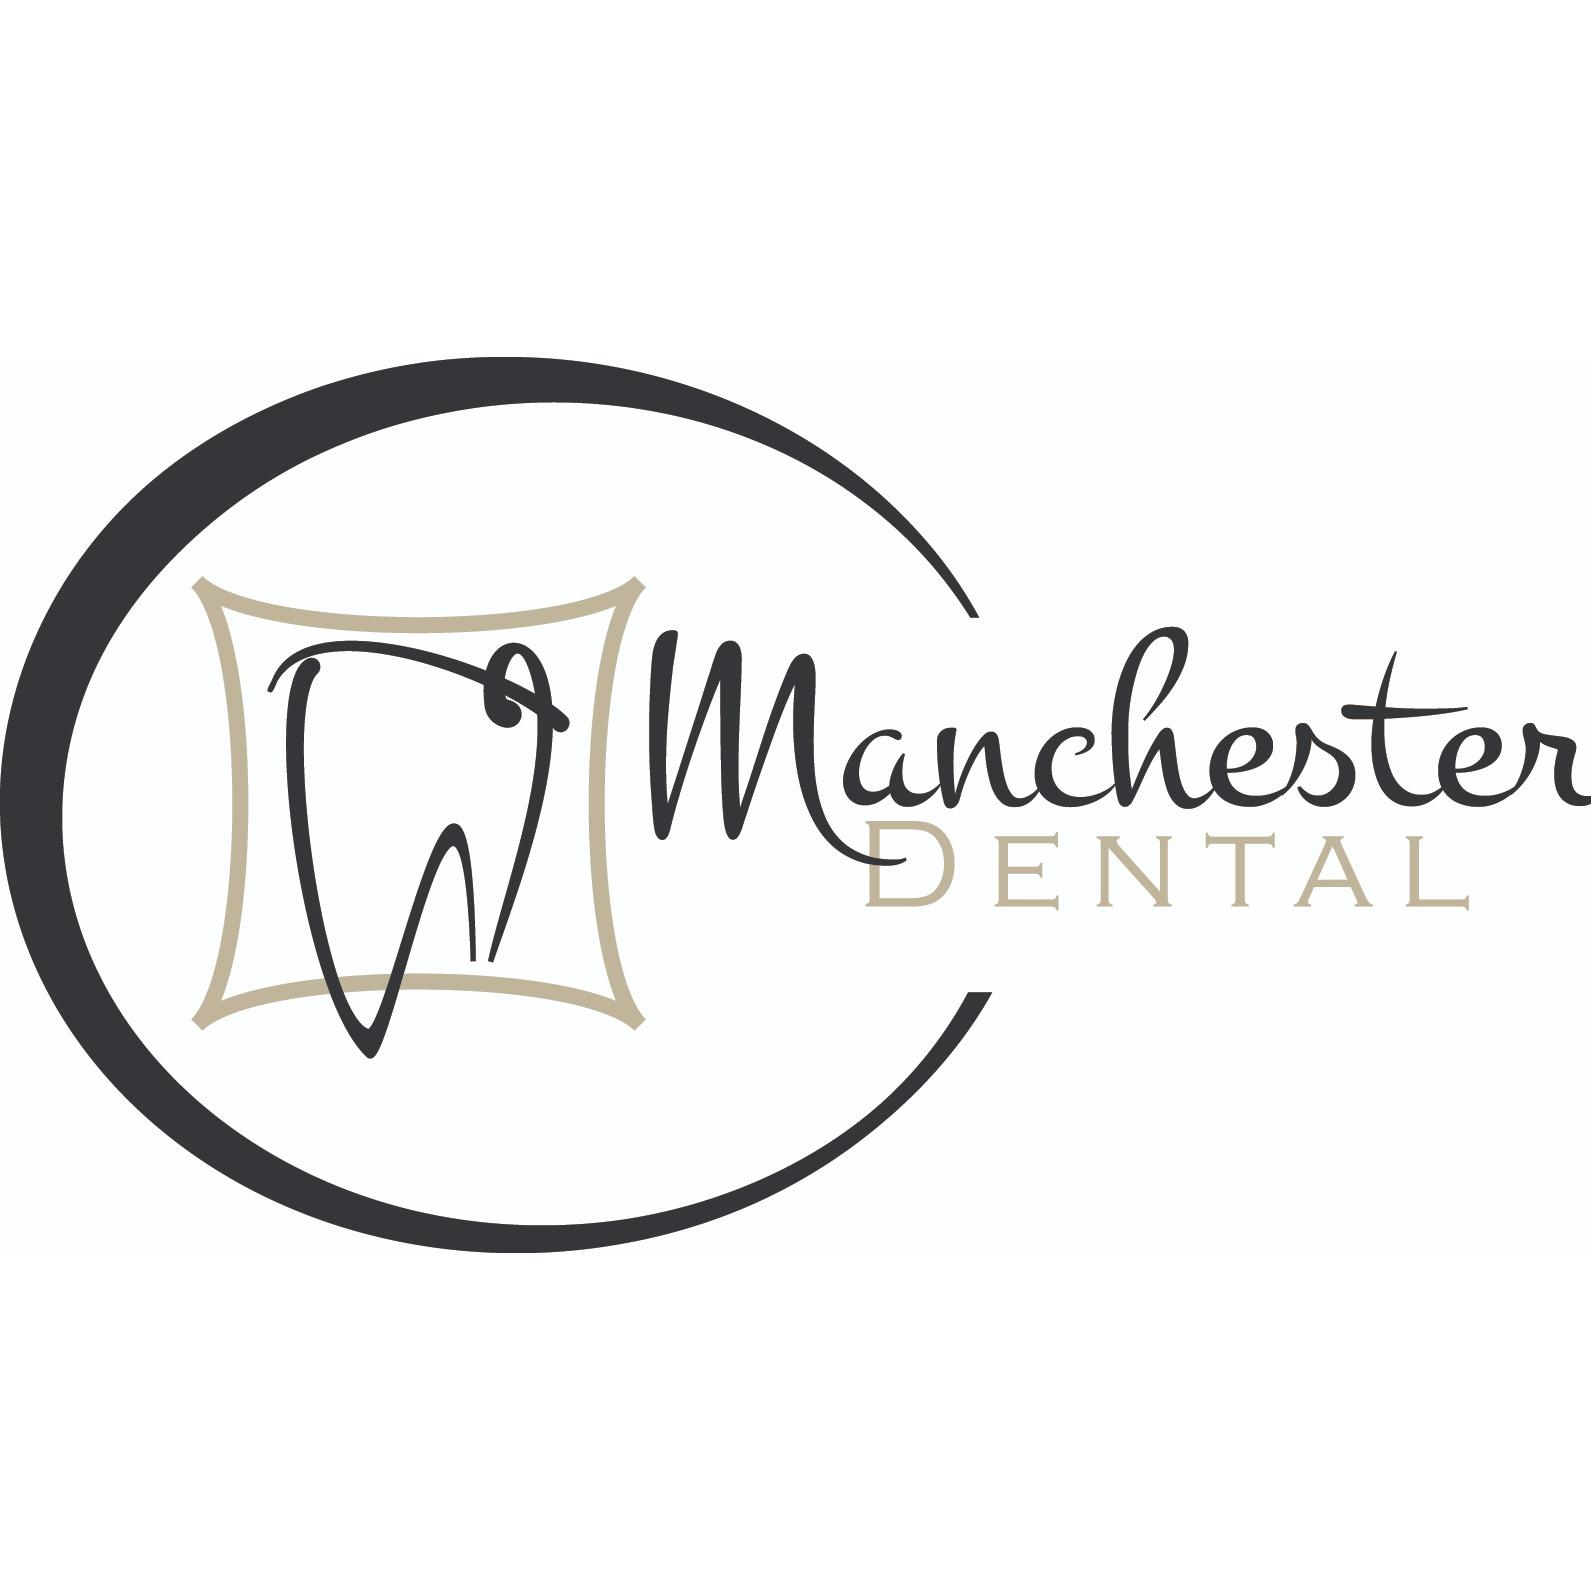 Manchester Dental - Manchester, IA - Dentists & Dental Services